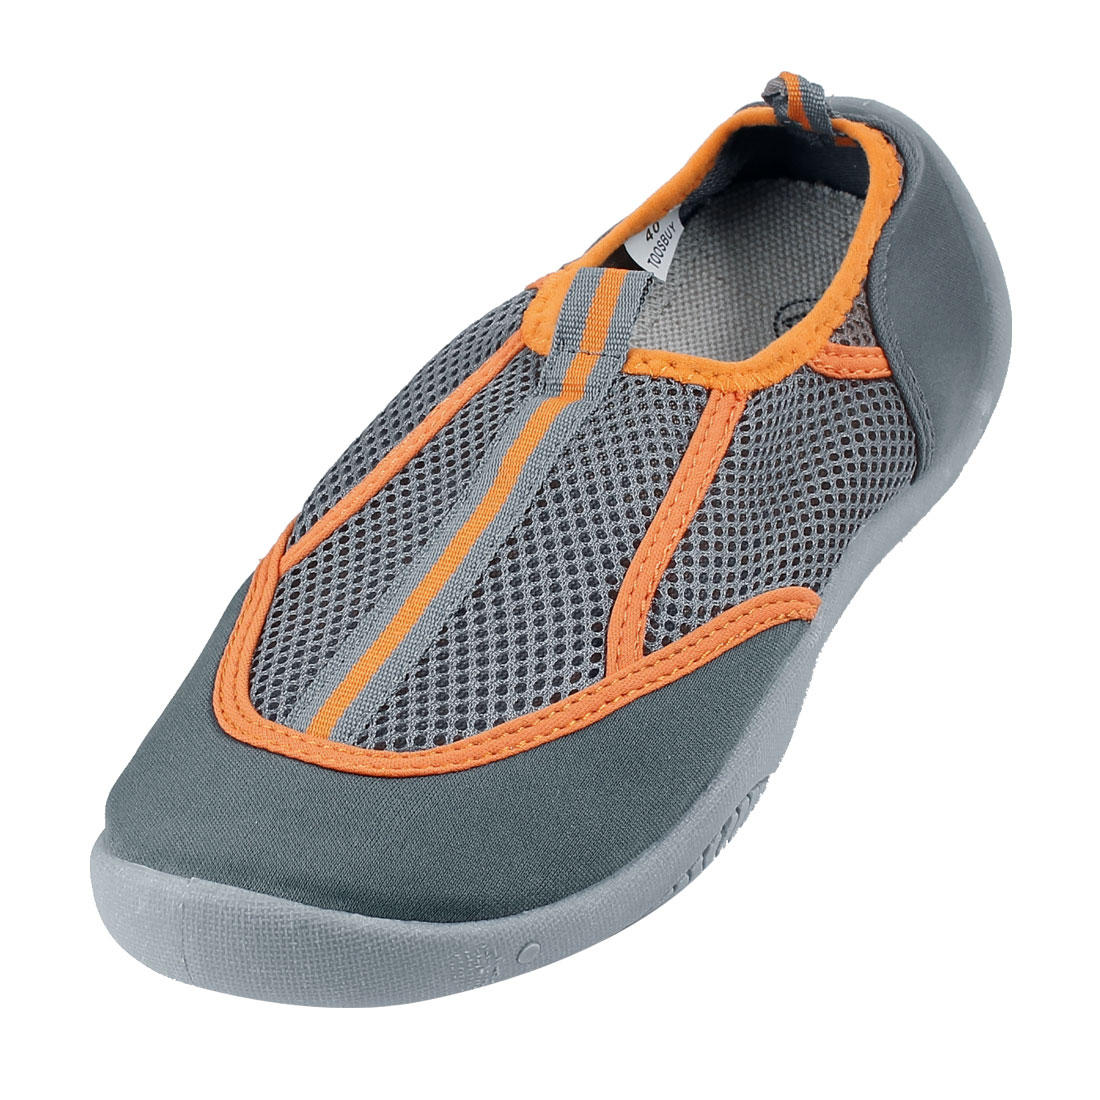 Gray Orange Round Toe Low Cut Flat Beach Mesh Shoes US 6.5 for Ladies